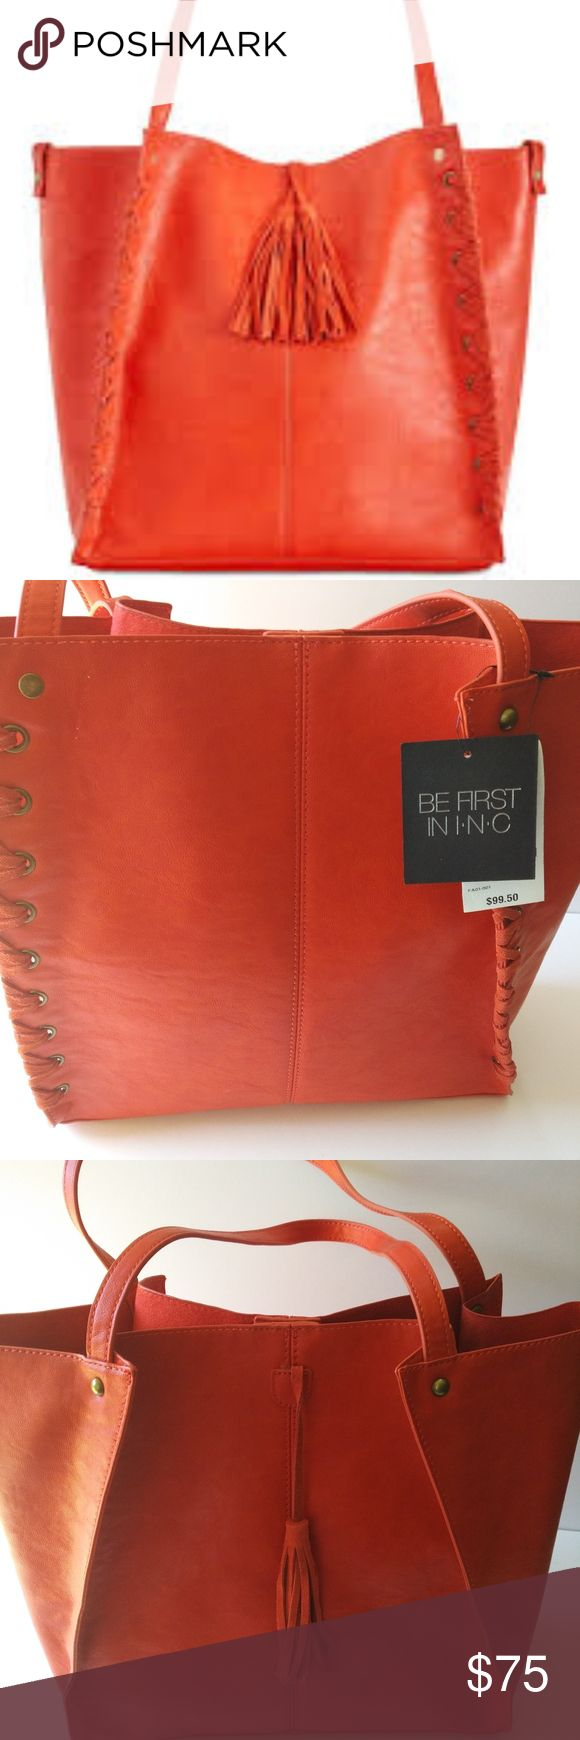 Venice Whipstitch Medium Tote Coral A large removable pouch organizes a INC International Concepts tote laced up the sides and finished with suede tassels for a touch of Western charm. Snap closure. New With tags INC International Concepts Bags Totes